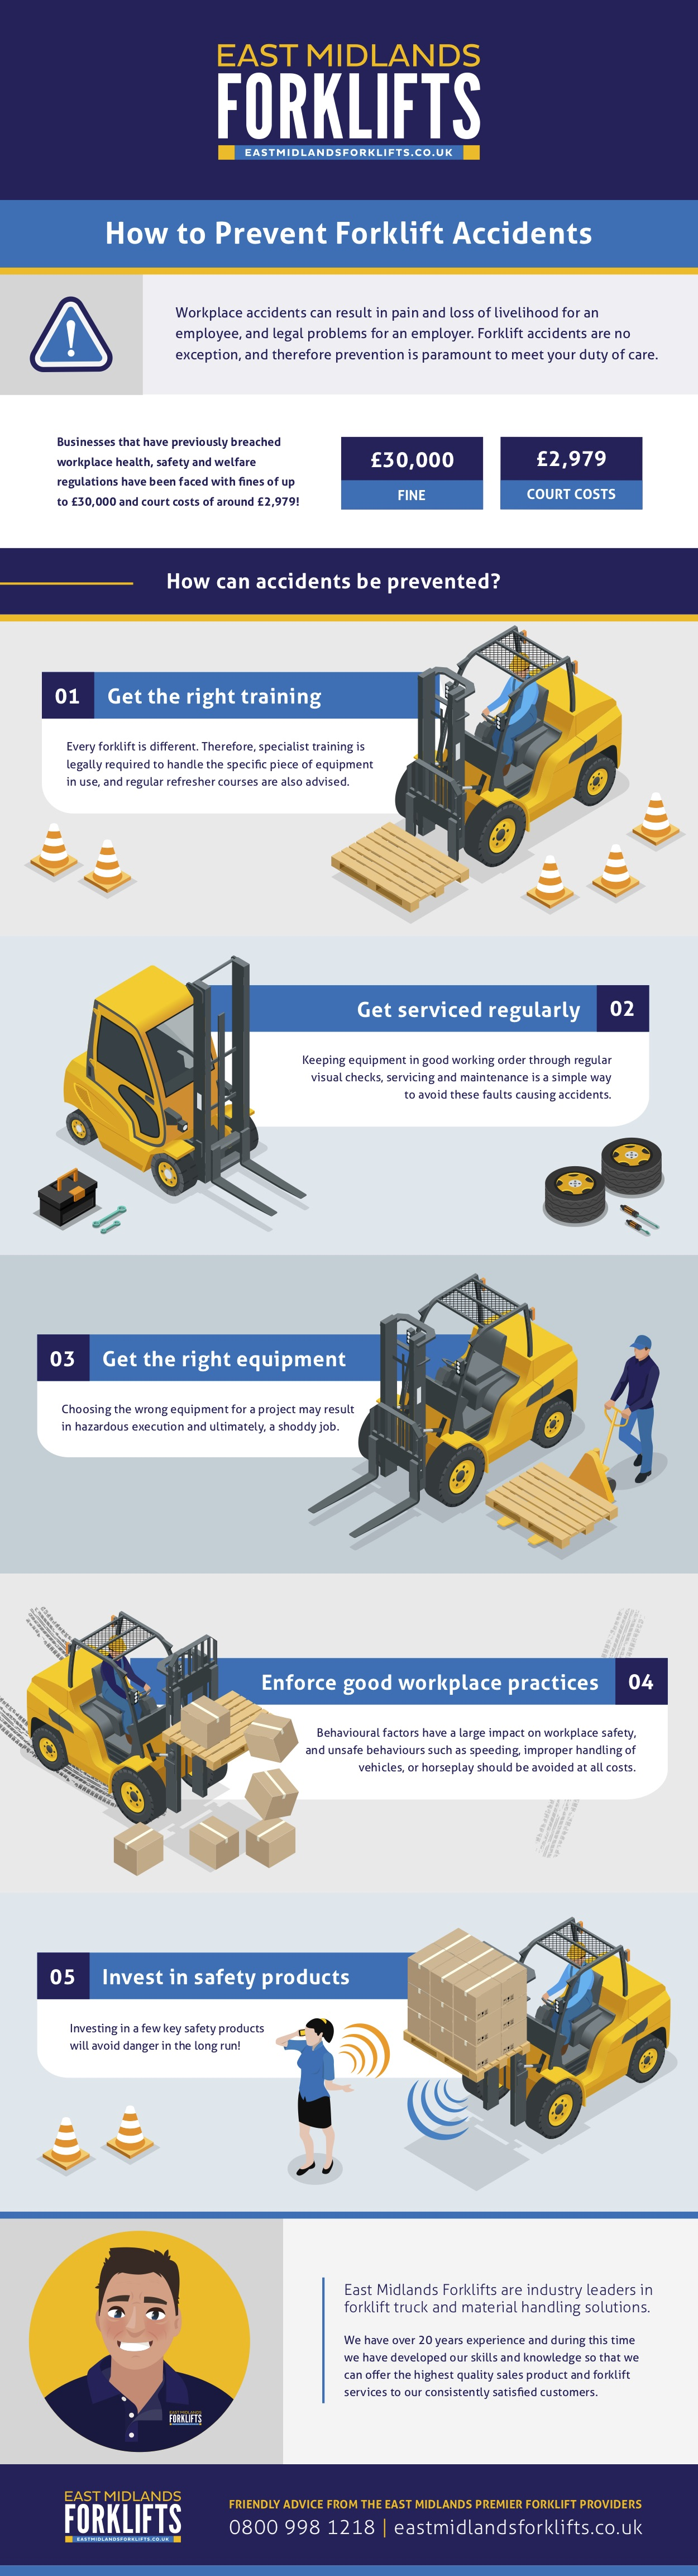 5 Ways To Prevent Forklift Accidents by East Midlands Forklifts